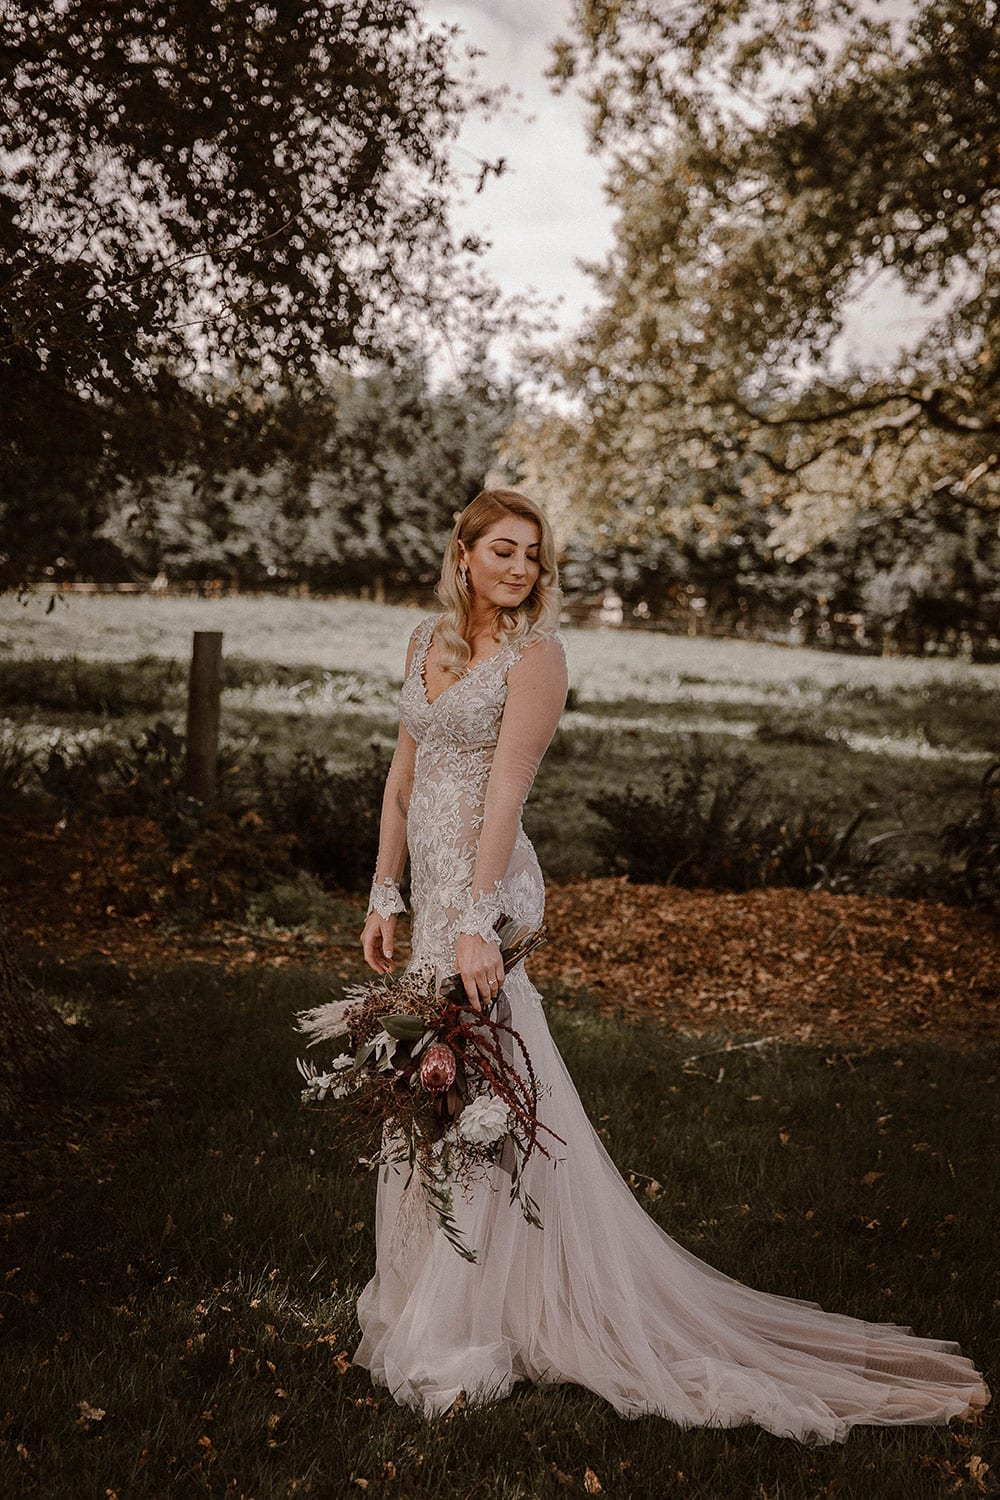 Real Weddings | Vinka Design | Real Brides Wearing Vinka Gowns | Rikki-Lee and Adam -Rikki-Lee side portrait with lace detail of bespoke dress displayed with chiffon layers